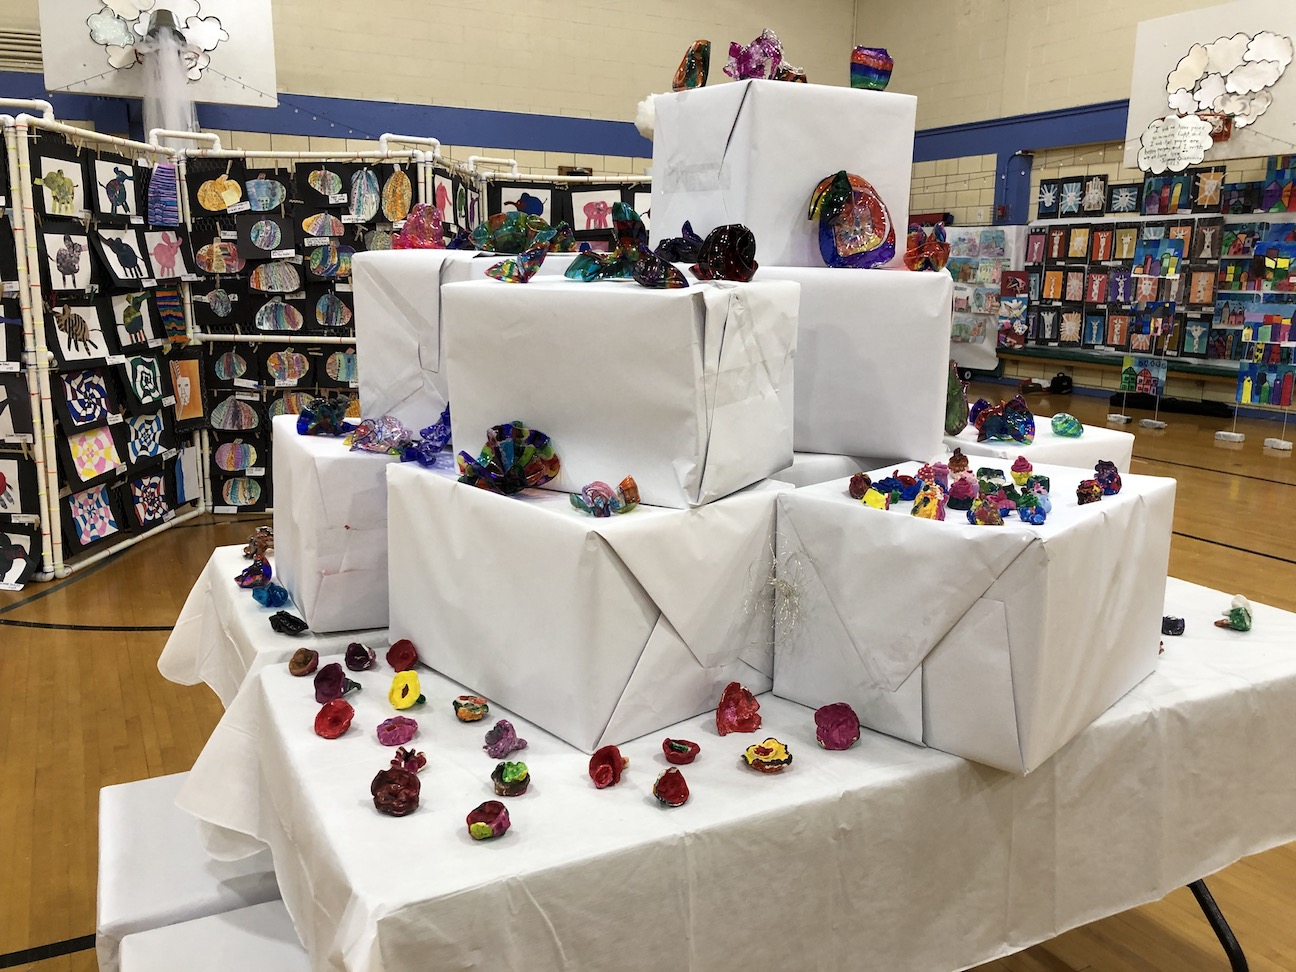 a pyramid of different crafts